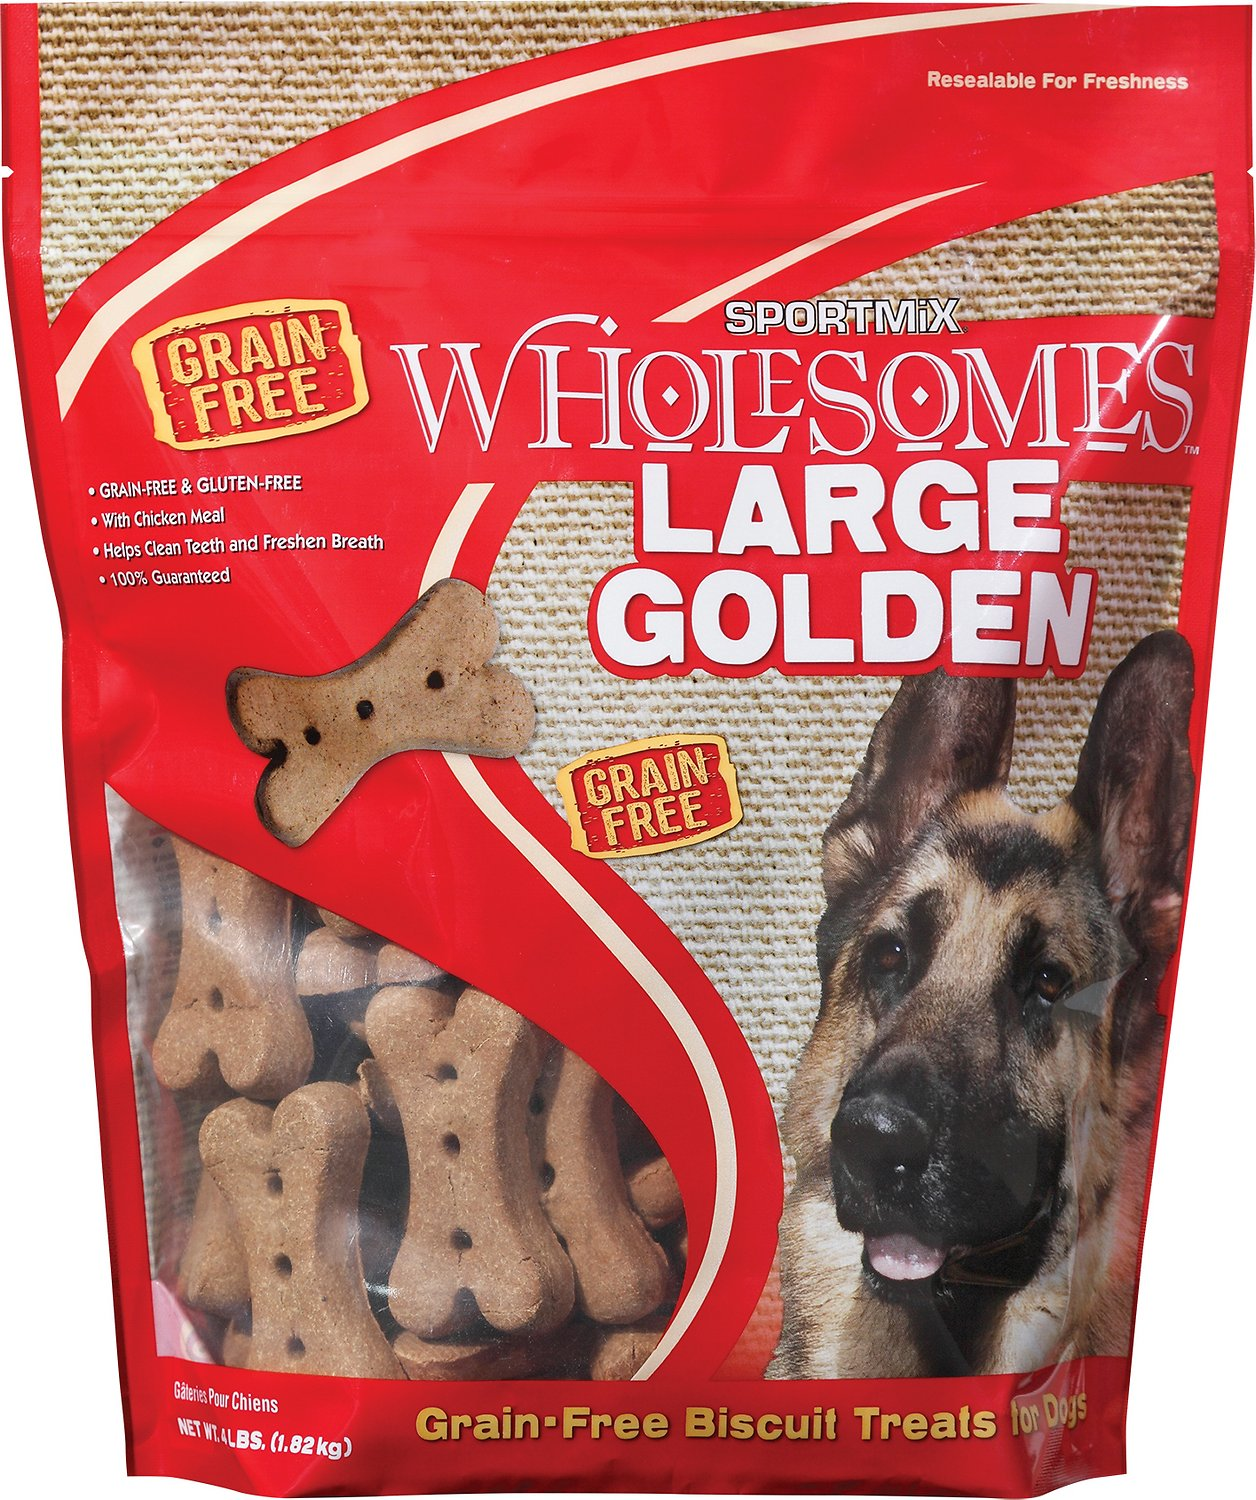 SPORTMiX Wholesomes Grain-Free Large Golden Biscuit Dog Treats (Size: 4-lb bag) Image